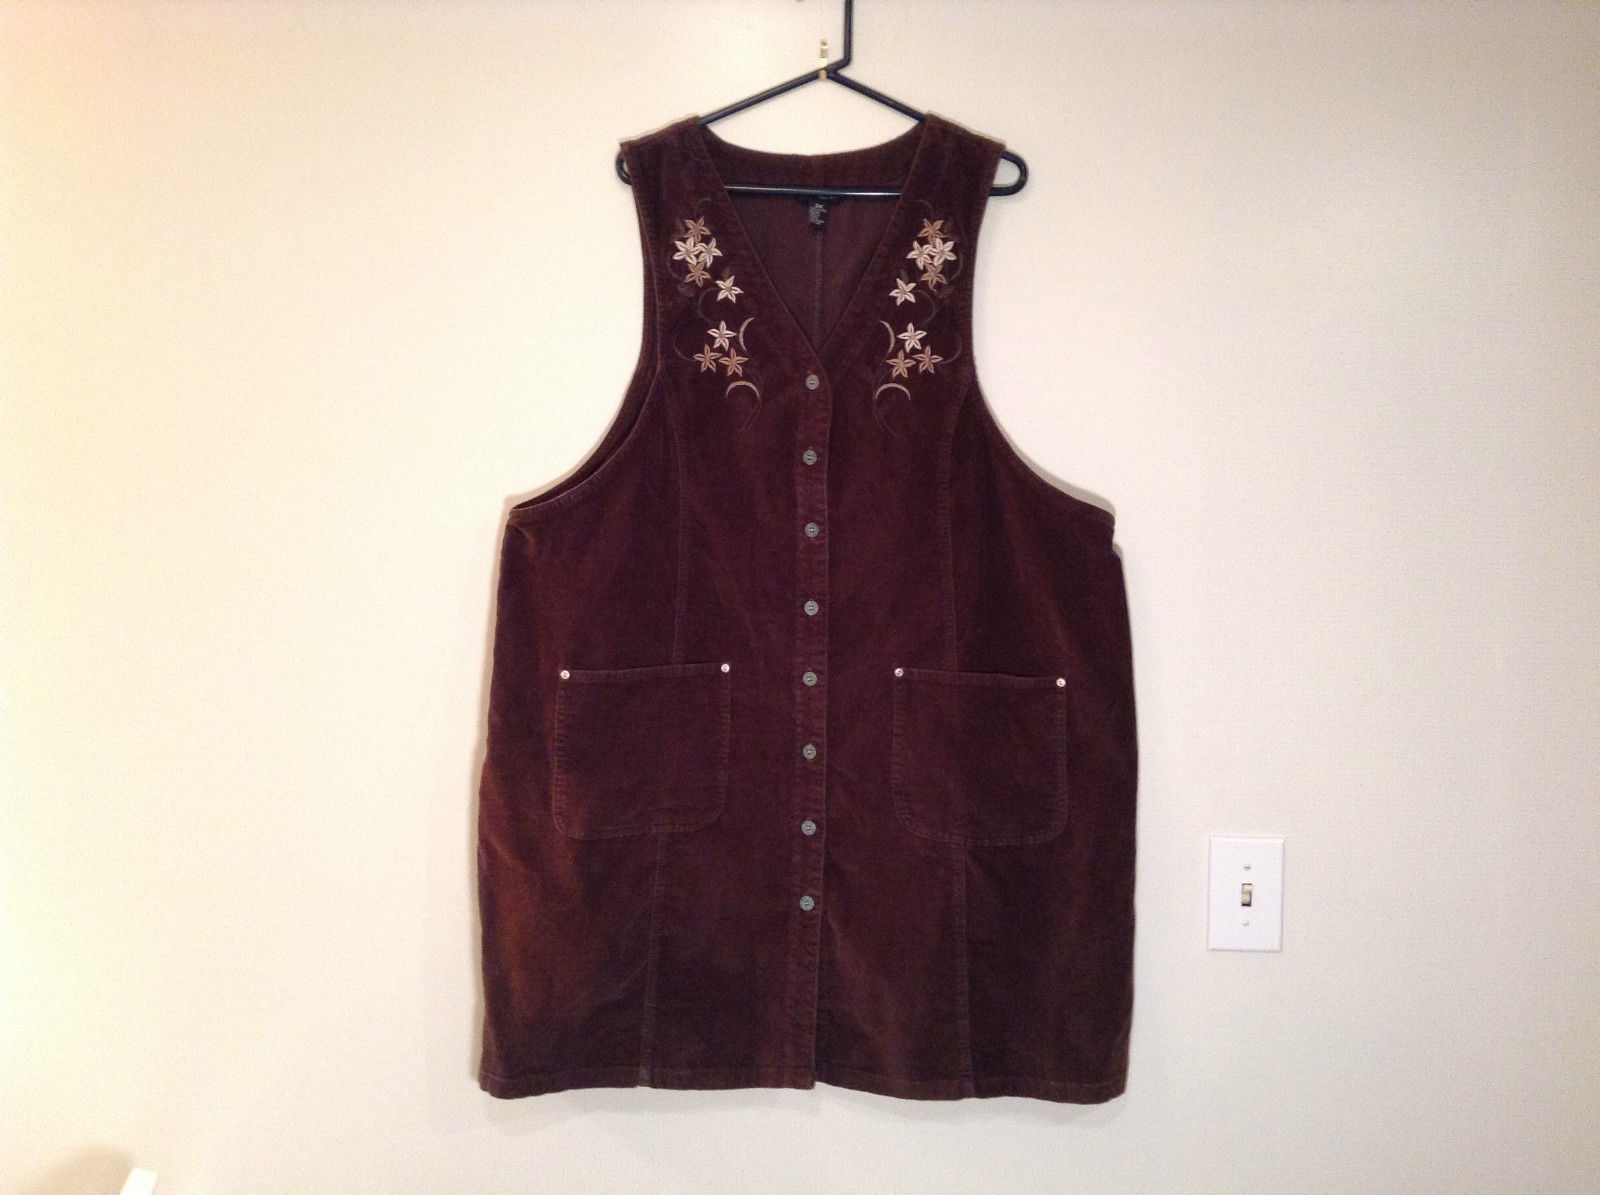 Dark Brown V Neck Sleeveless Dress 3X Eric Charles 100 Percent Cotton corduroy